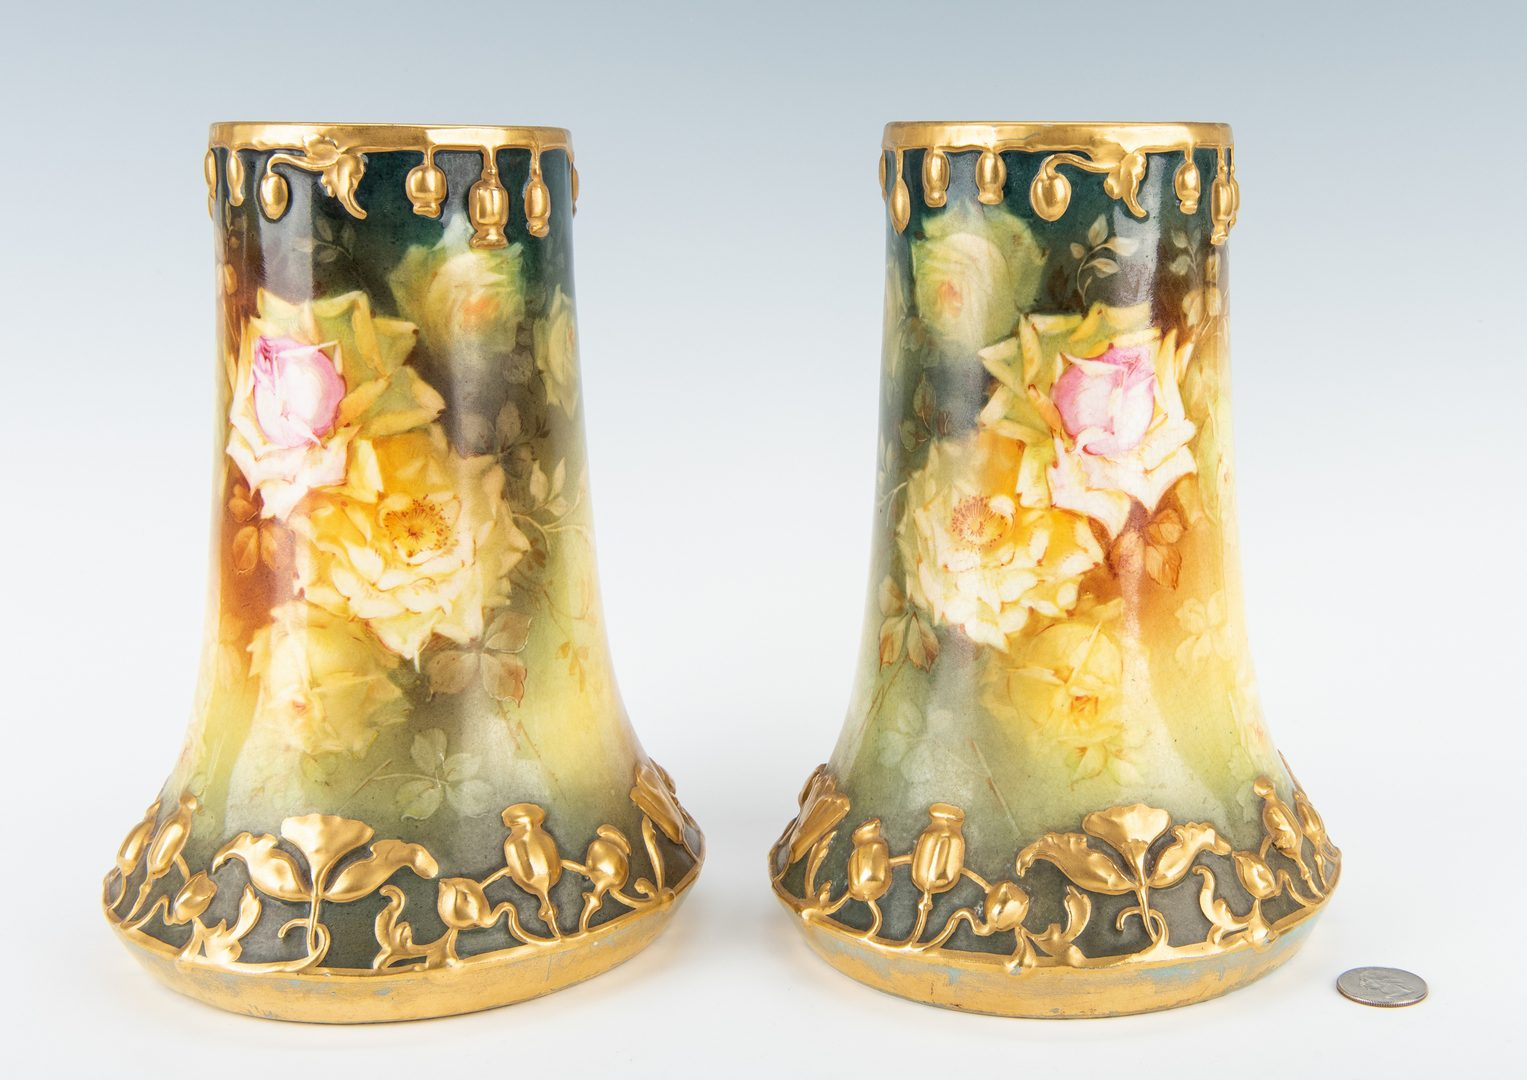 Lot 335: Pair Royal Bonn Art Nouveau Vases